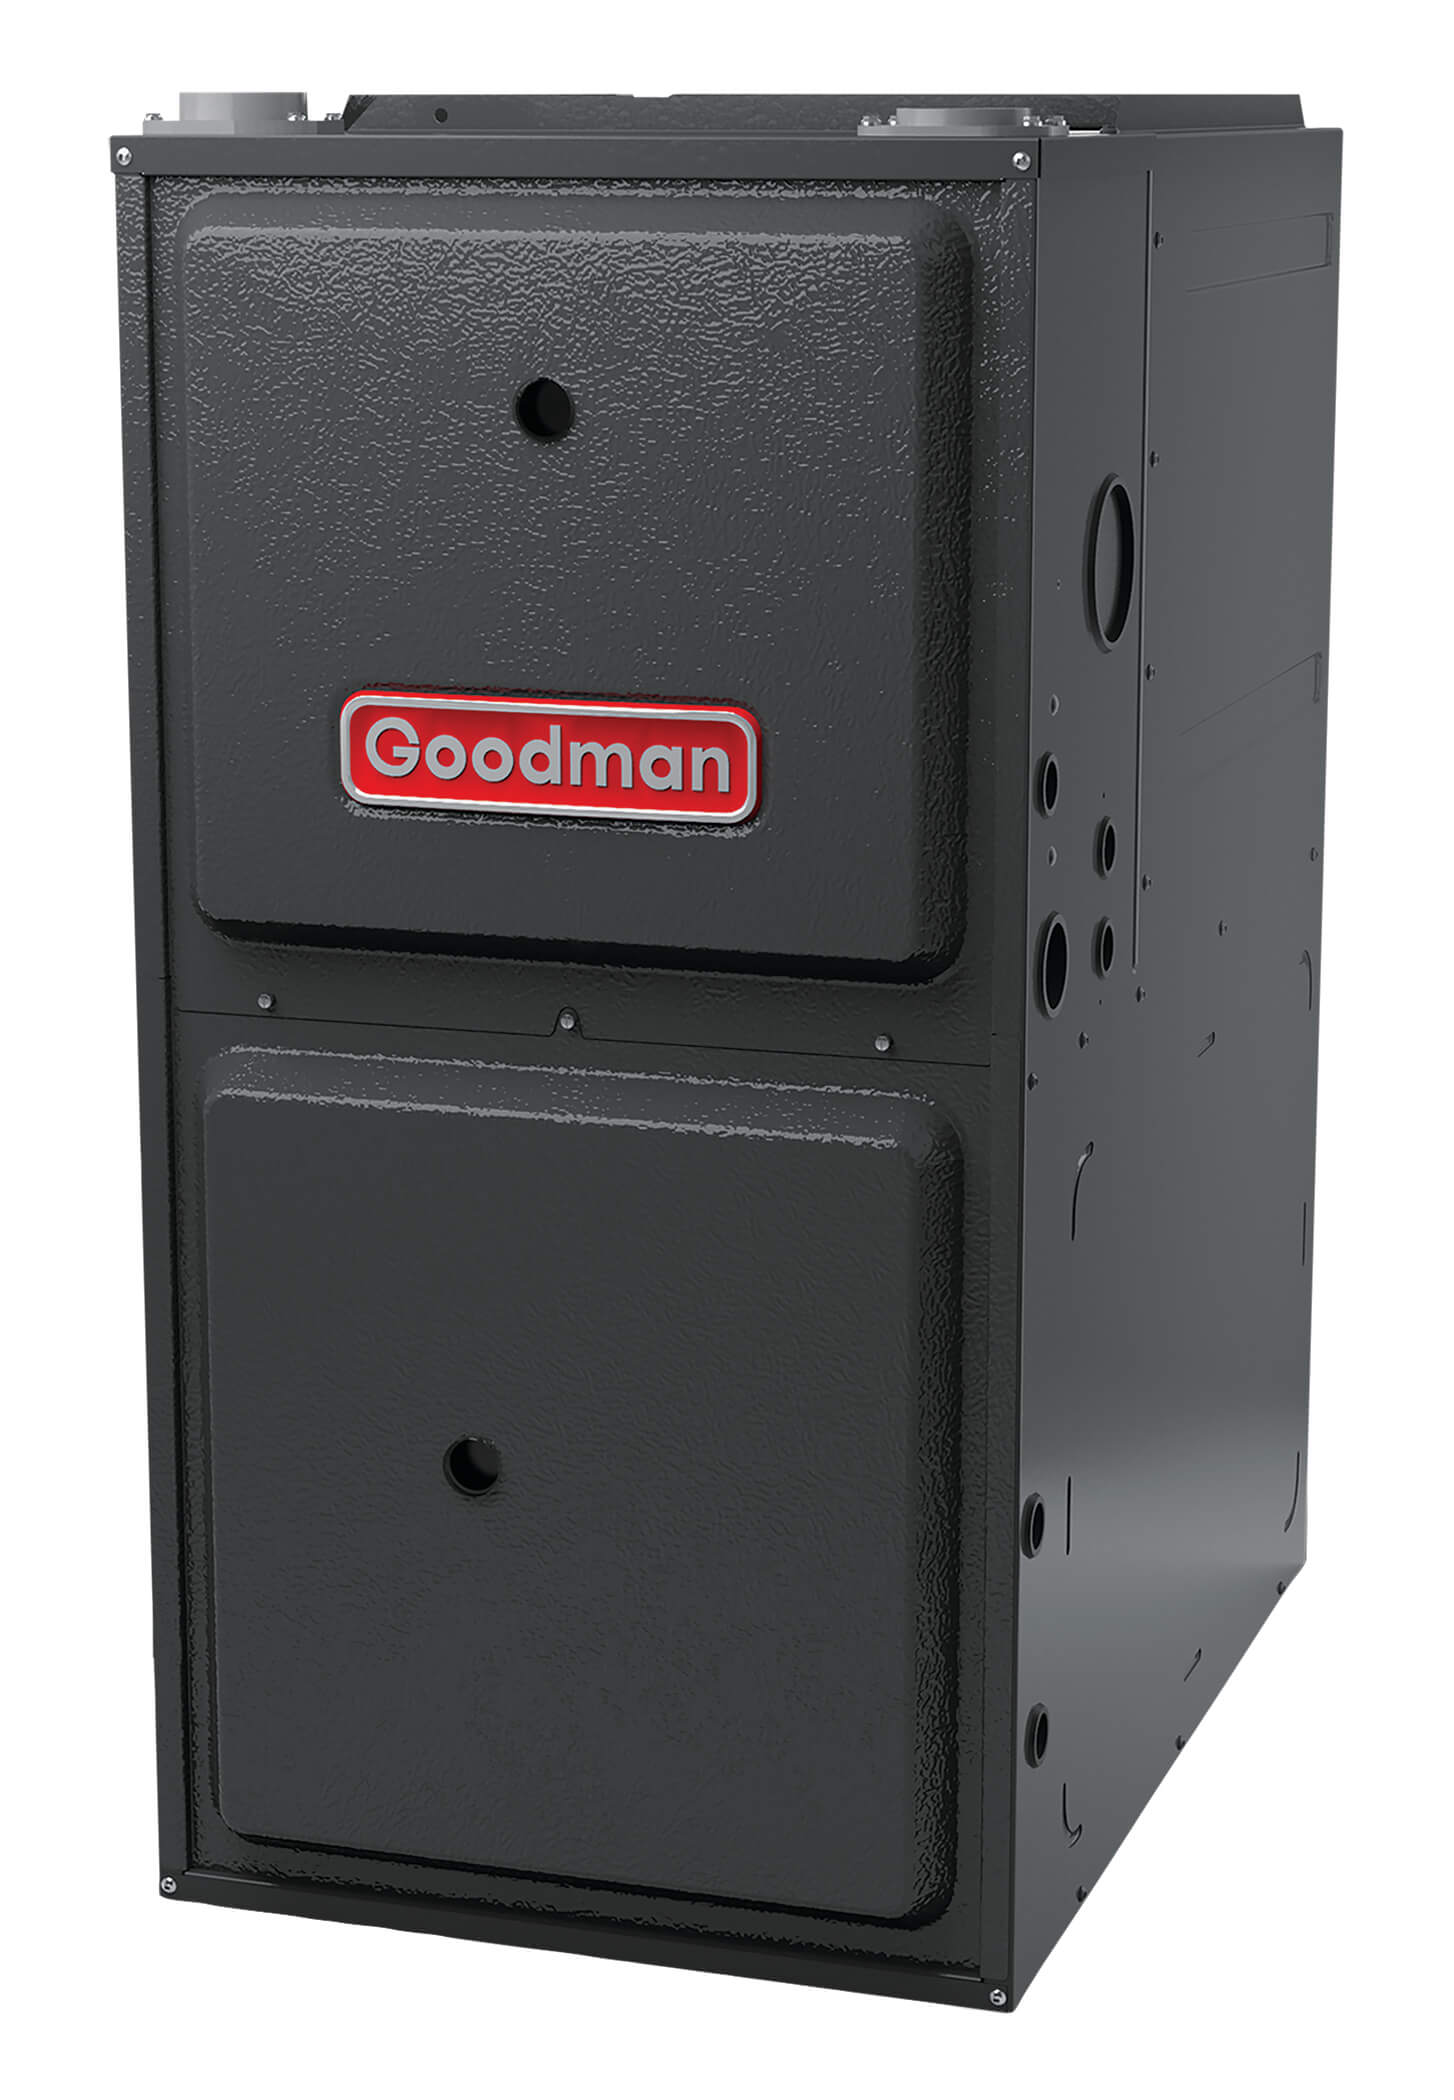 GMSS92 Goodman Single Stage Gas Furnace High Efficiency Multi Speed Up To 92 AFUE Performance Upflow Horizontal